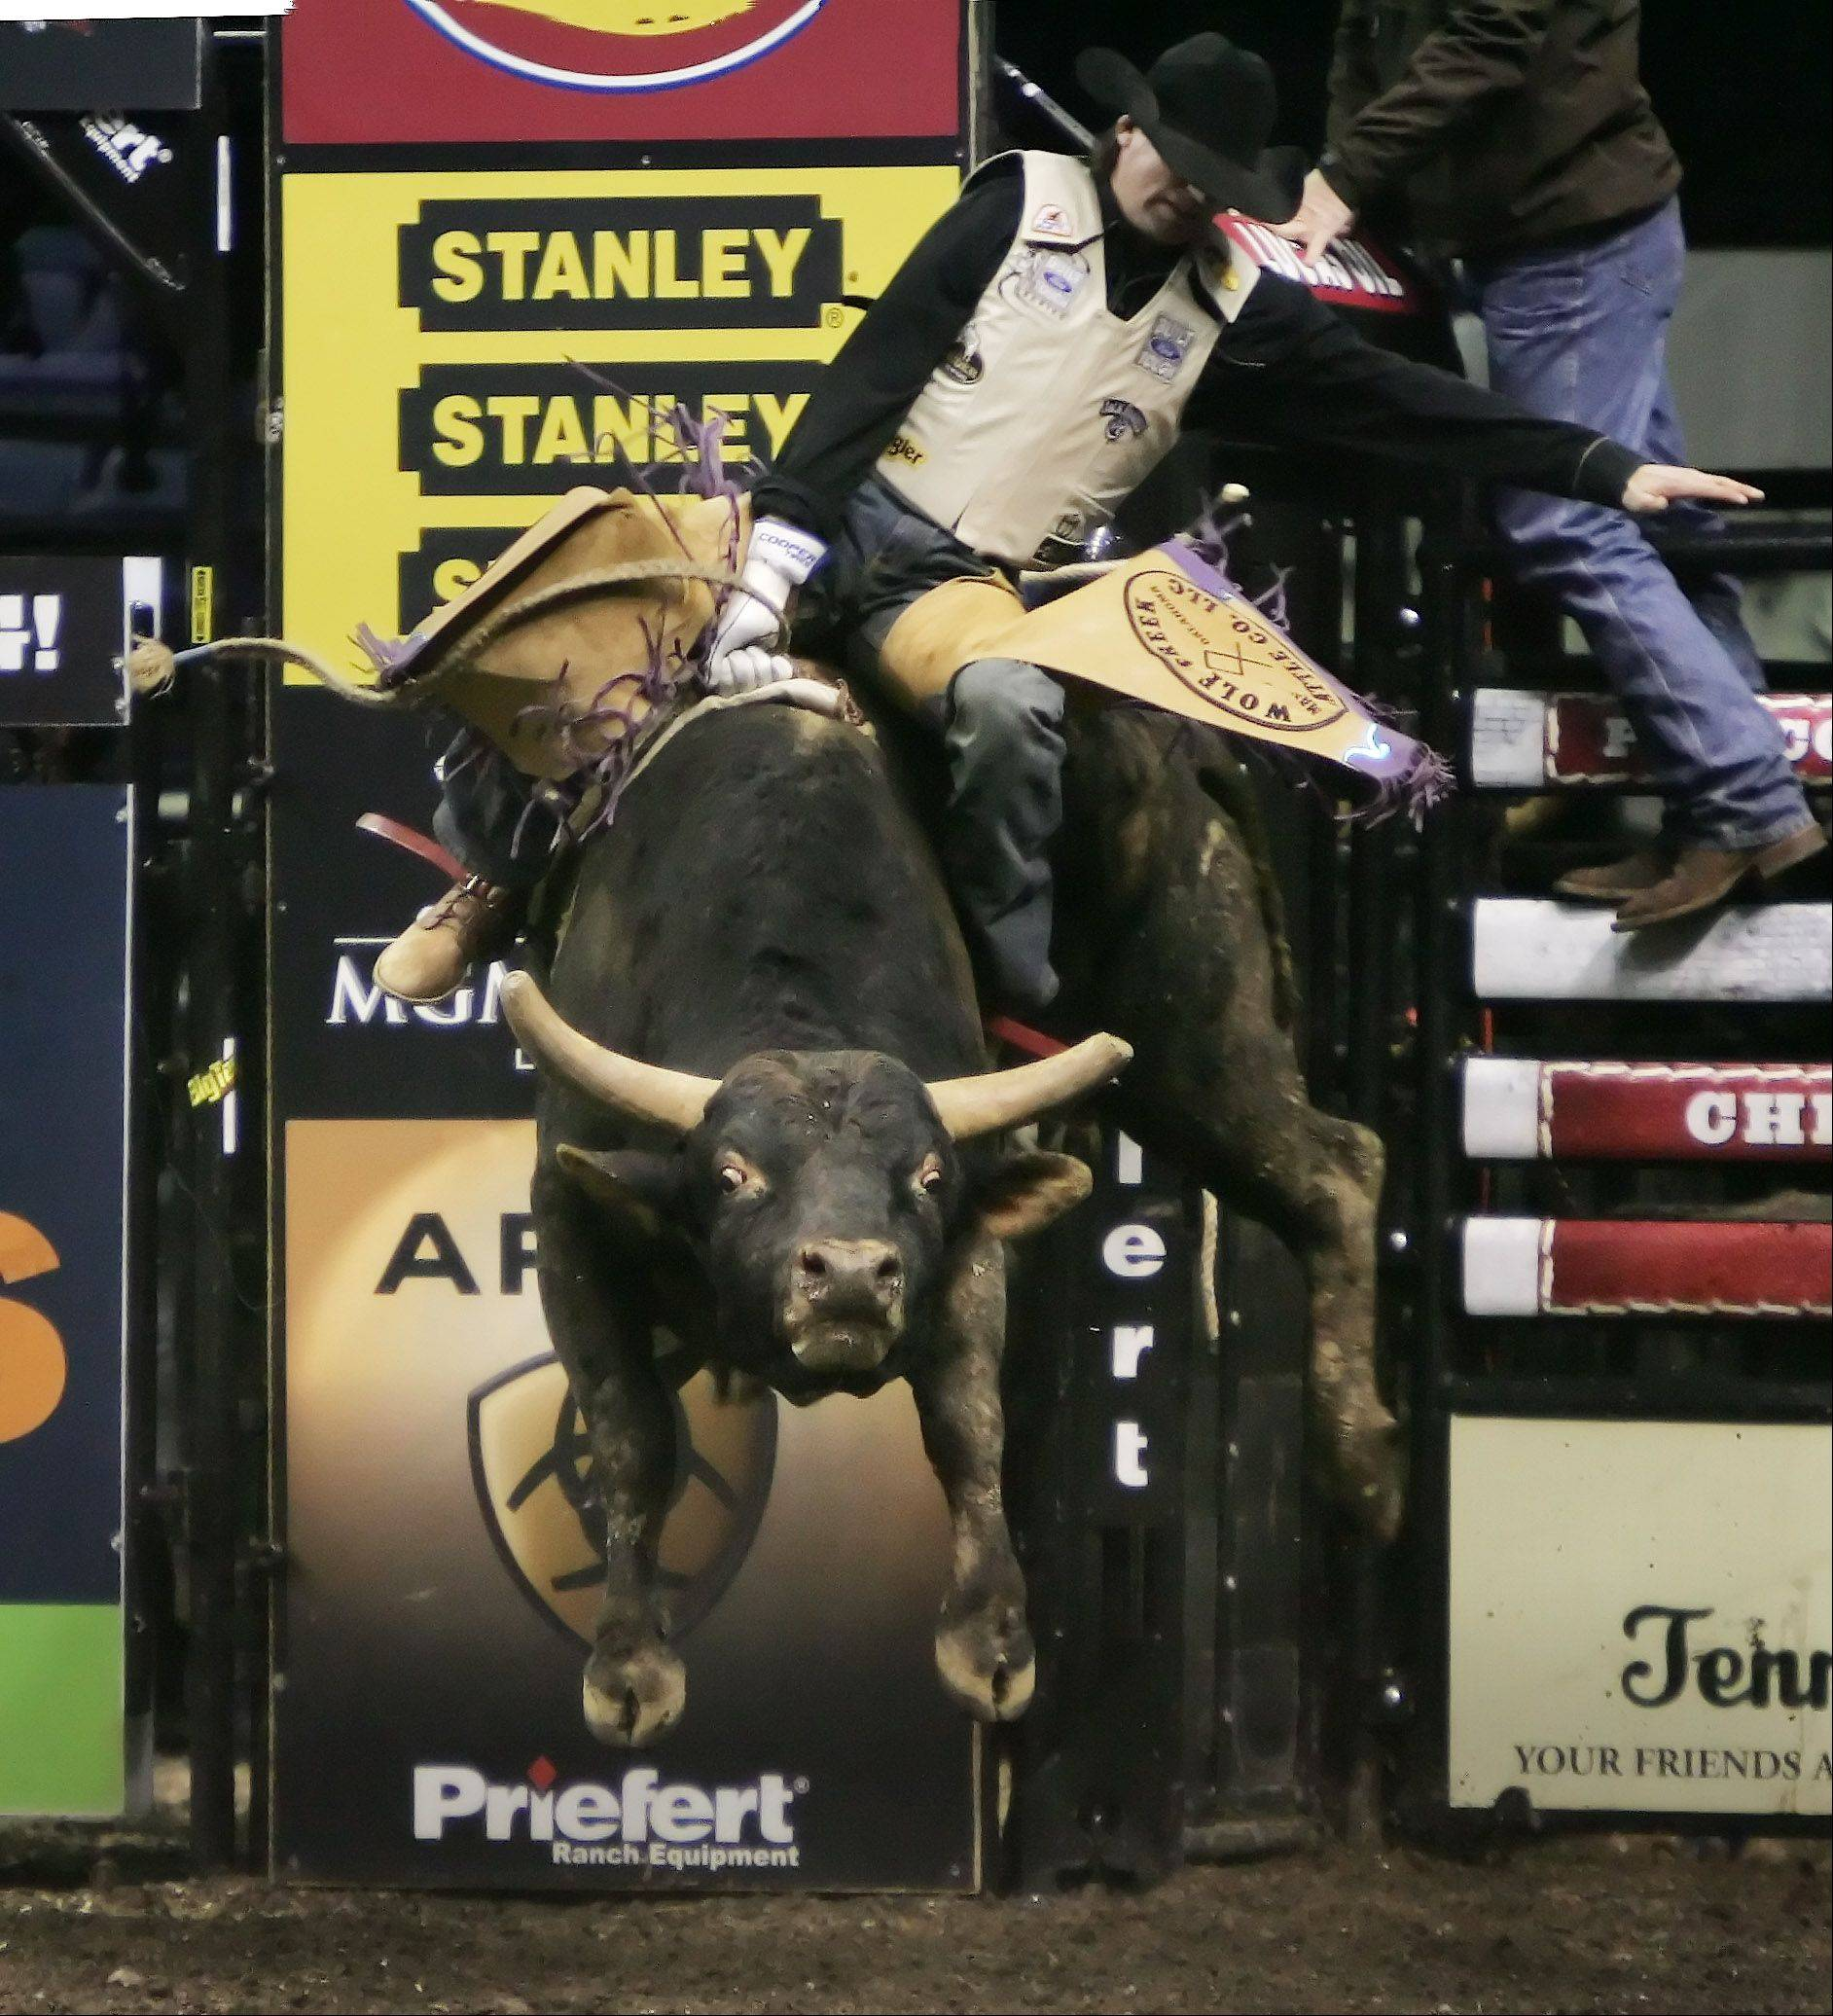 Ben Jones rides Bar Code during the Professional Bull Riders Chicago Invitational Sunday at the Allstate Arena in Rosemont. Riders from around the world competed in the arena by riding 2,000-pound bulls.